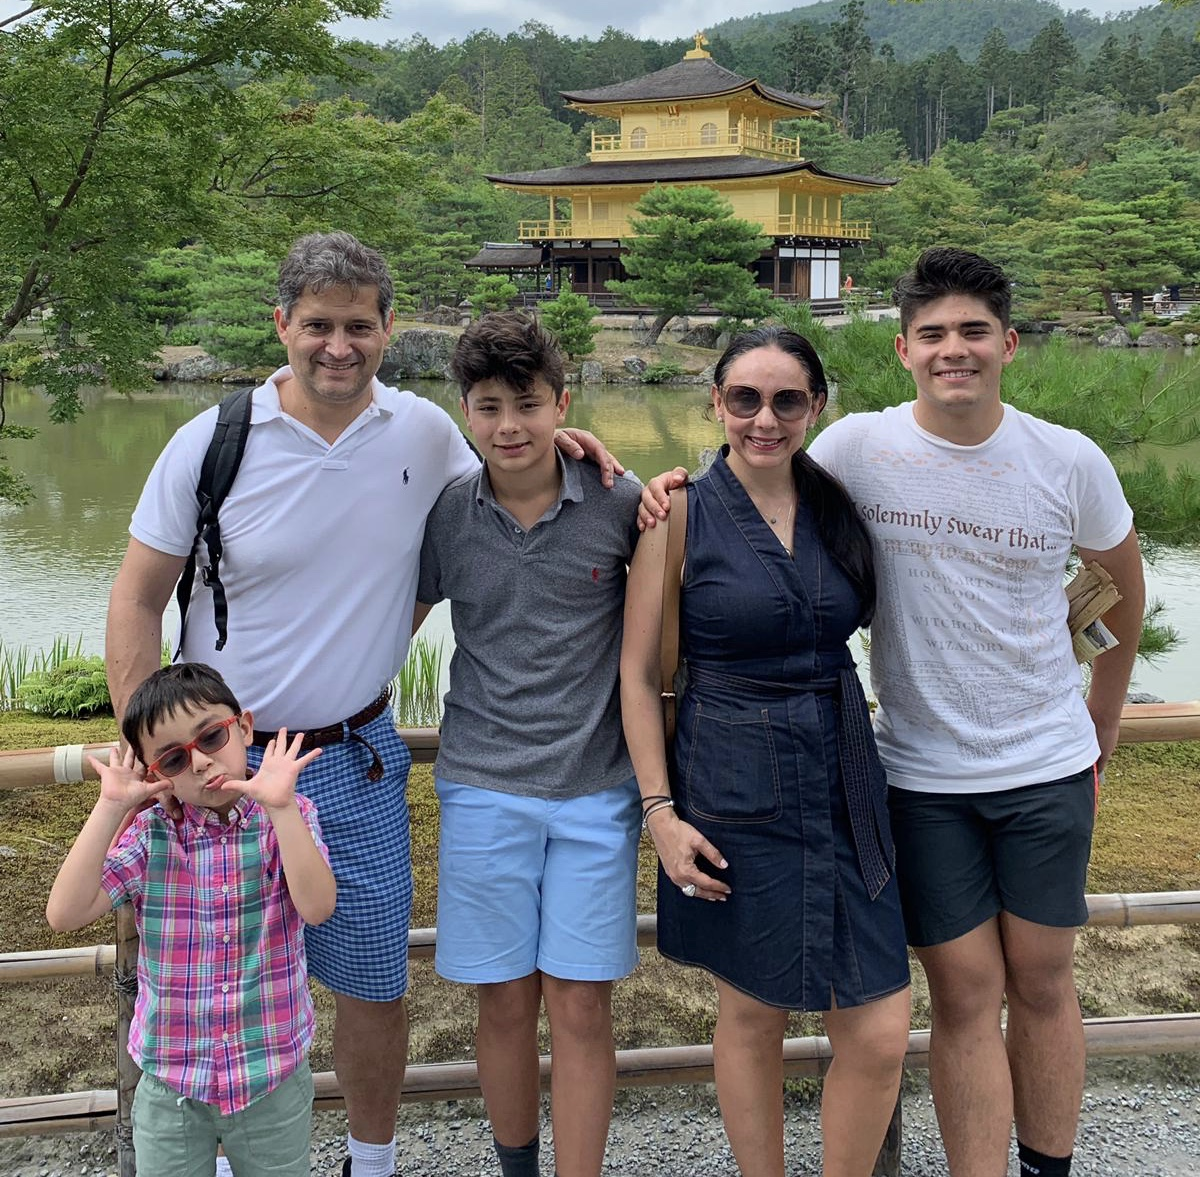 "Visiting the Kinkaku-ji, a Zen Buddhist temple, sophomore Santi Lugo and his family pose for a photo. The temple, also known in translated Japanese as the ""Temple of the Gold Pavilion,"" is one of Japan's most popular buildings. ""It was a long trail, trees all around, and the sound of rocks being stepped on crowded my ears. When you're walking, you're unable to see anything until suddenly you see a gold point rising above the trees that leads to the peaceful stream below the astonishing temple,"" Lugo said"